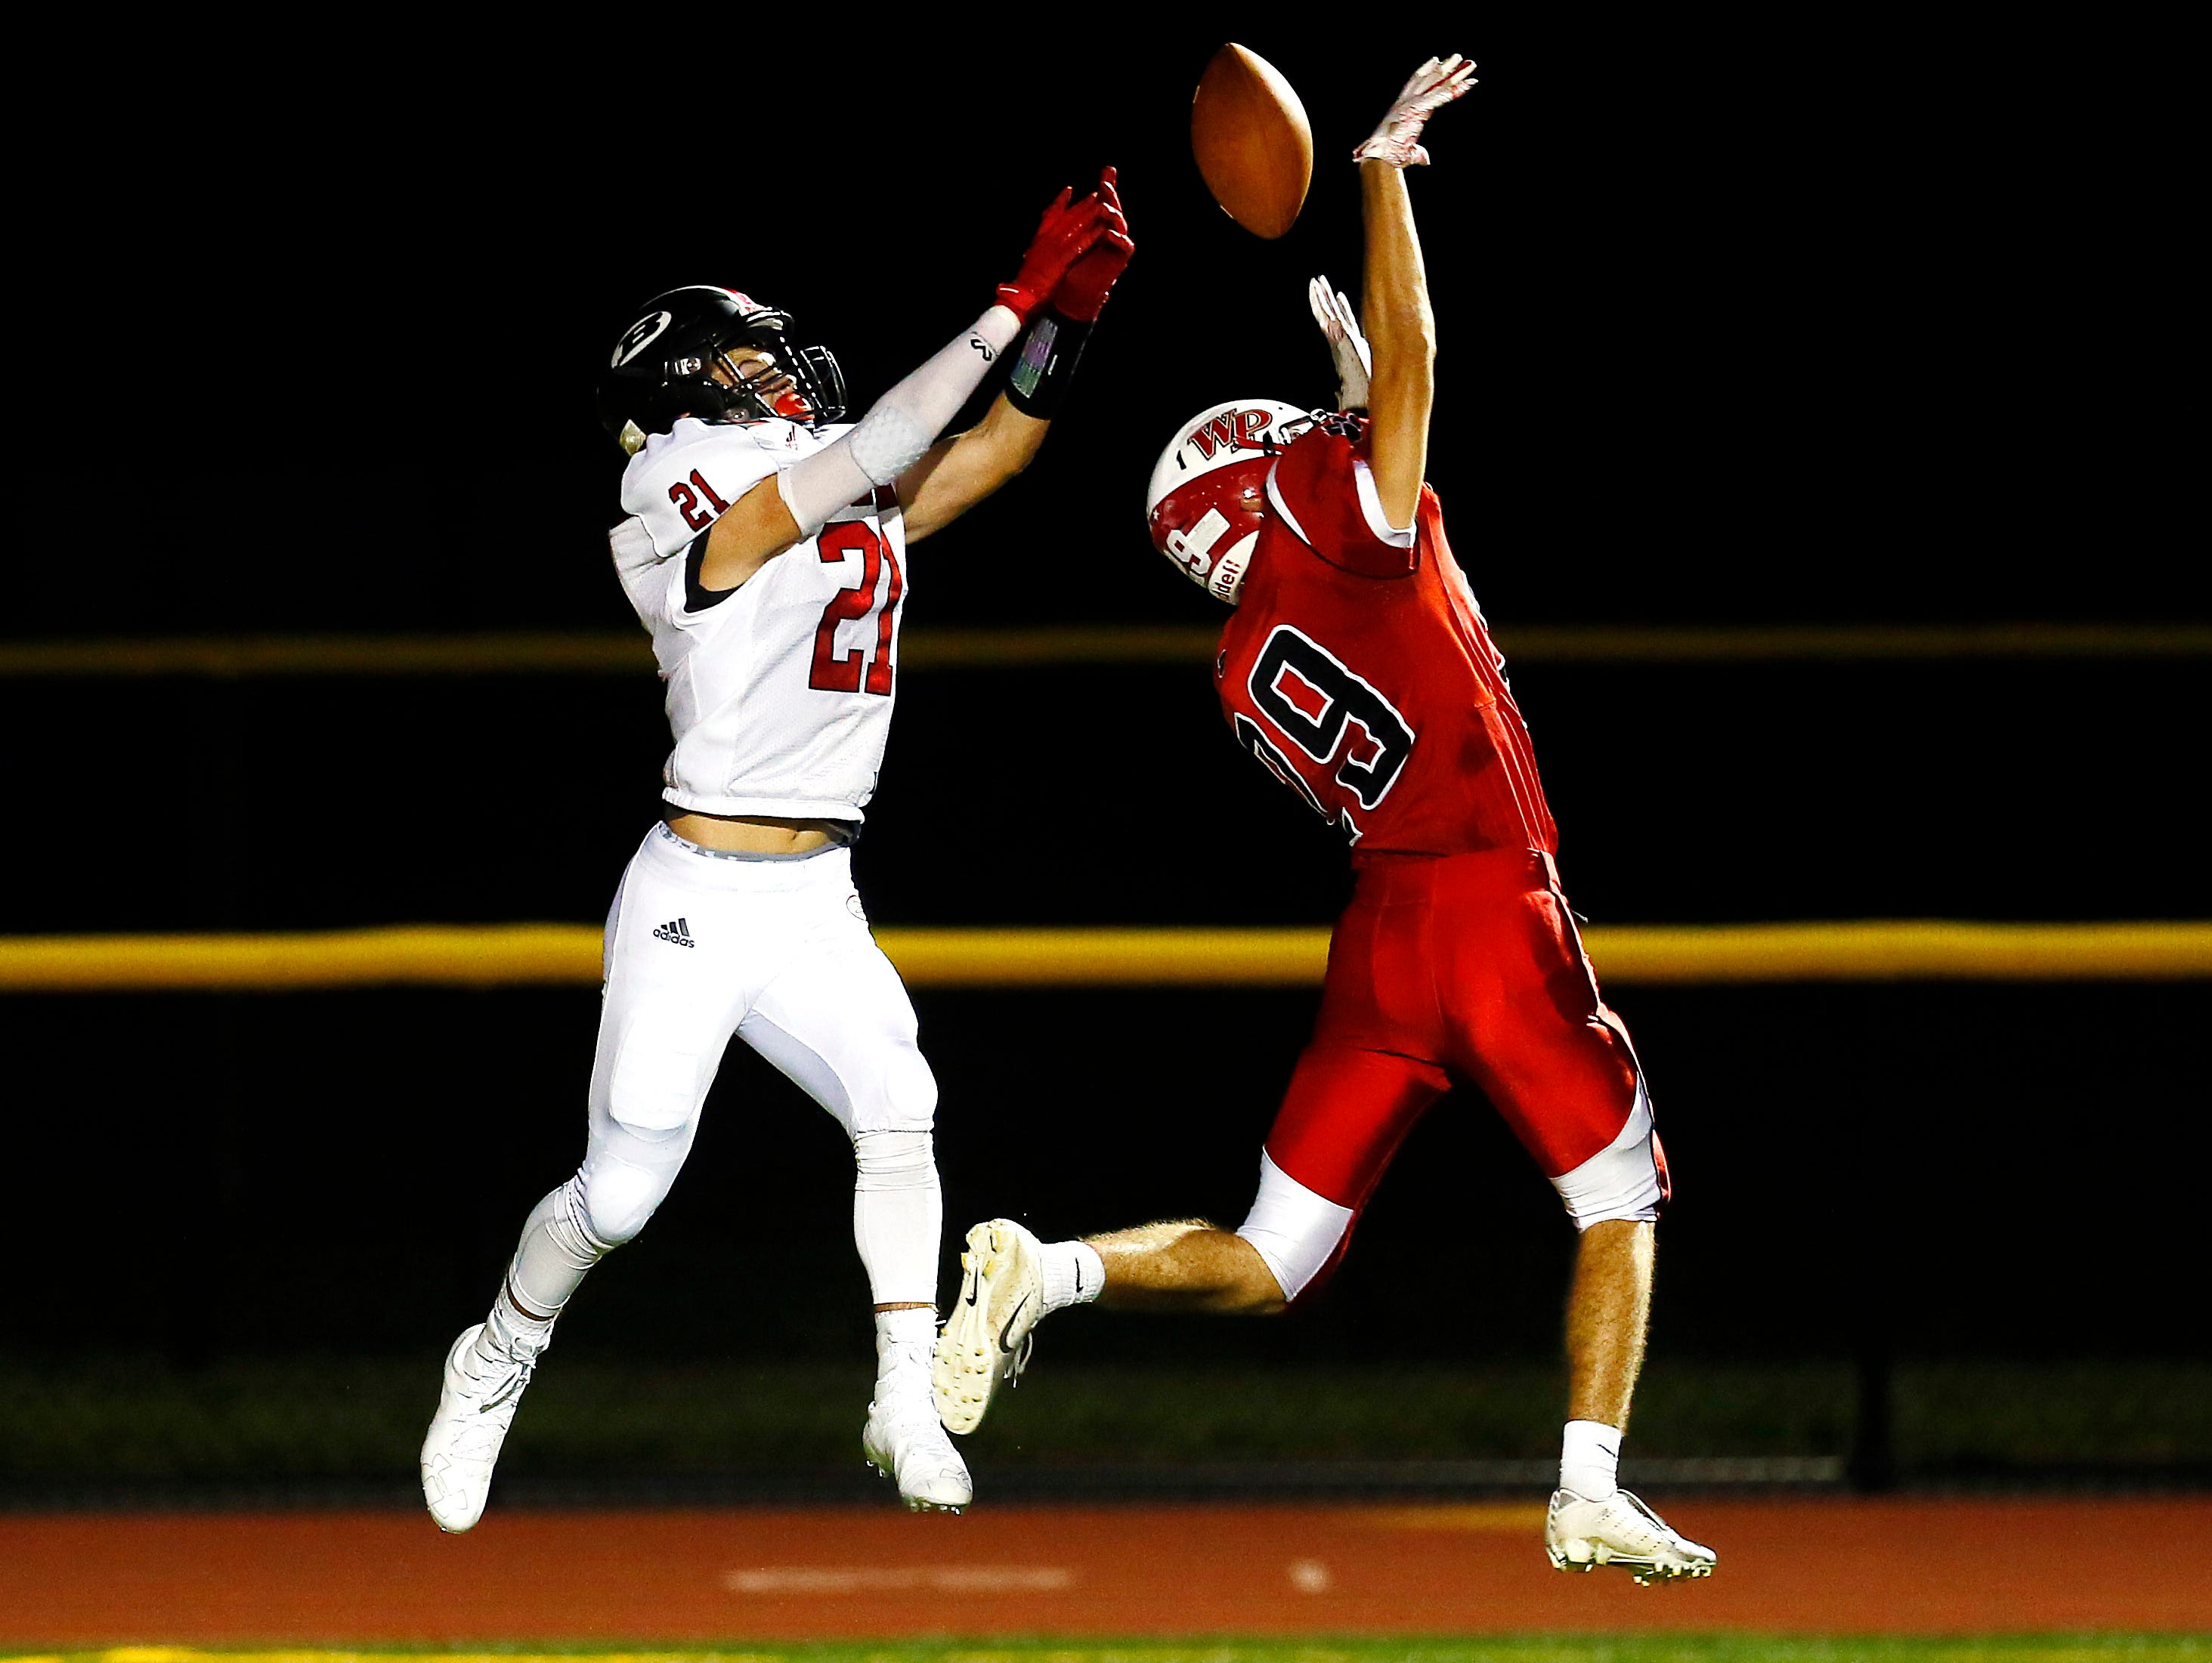 Whippany Park's Cristiano Zipeto knocks down a pass intended for Boonton receiver Nick DeLuca during their SFC American Blue Friday night football game. September 21, 2018, Whippany, NJ